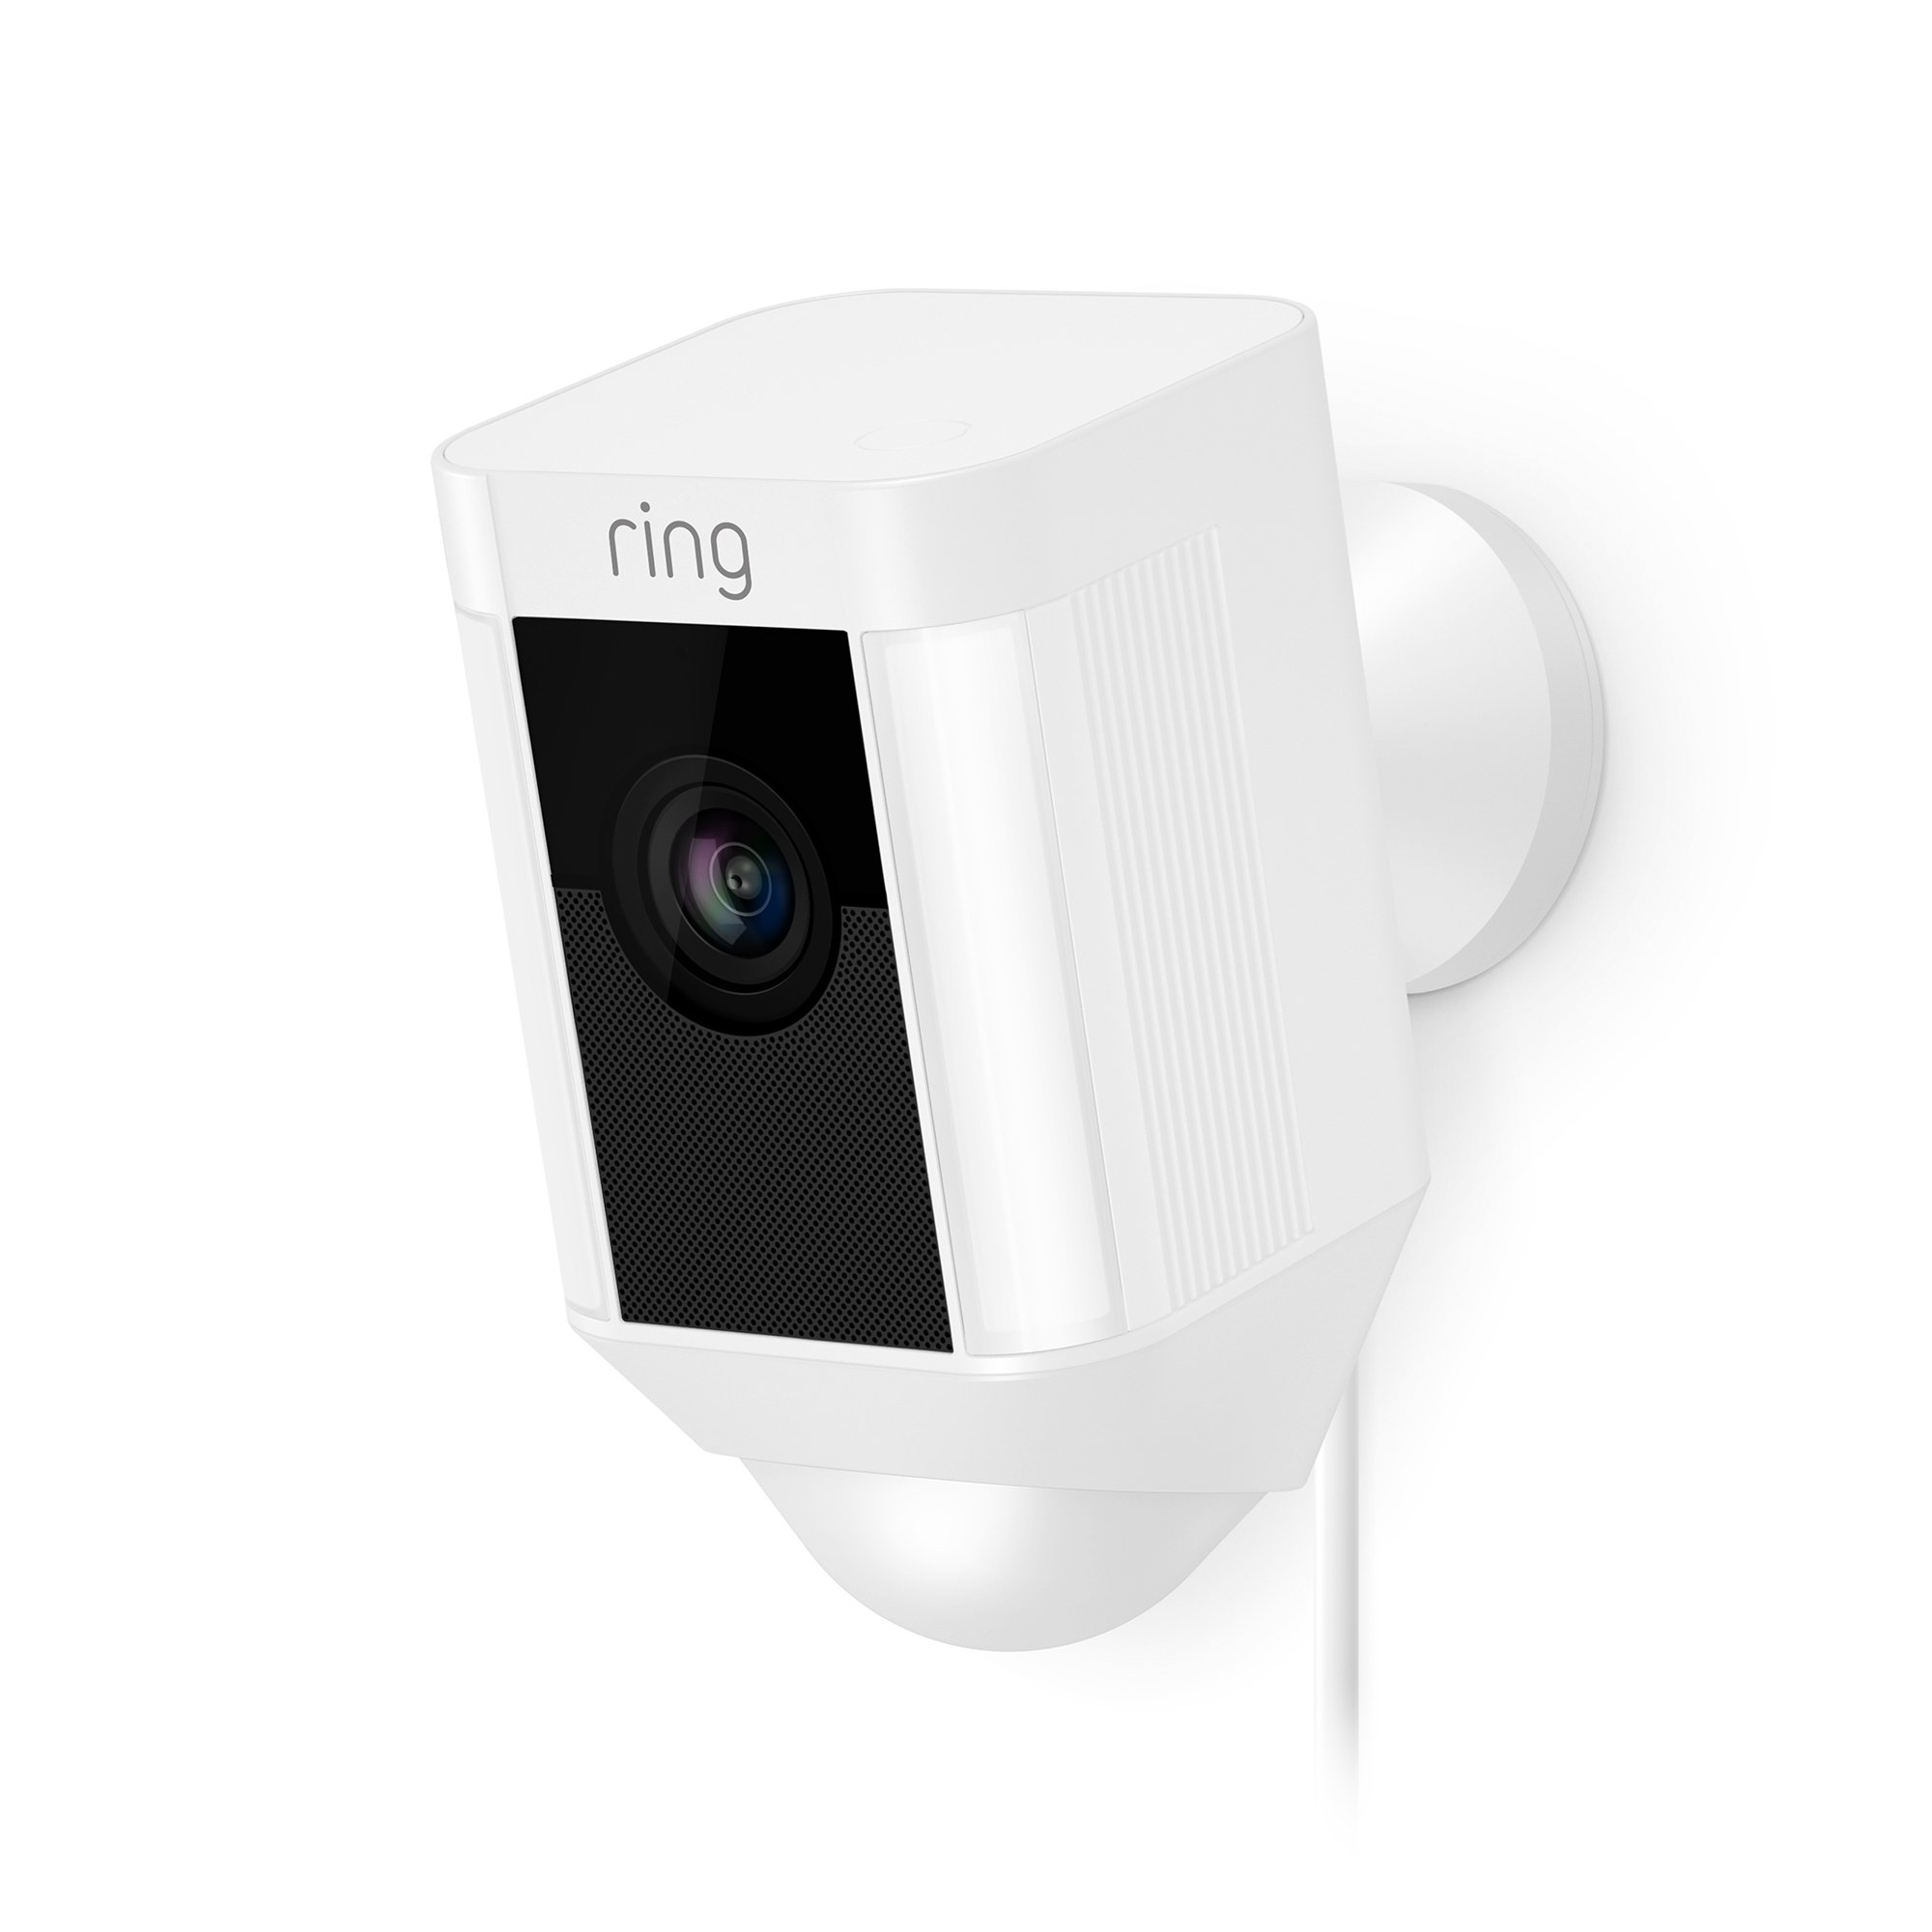 Ring Spotlight Cam Wired: Plugged-in HD security camera with built-in spotlights, two-way talk and a siren alarm, White by Ring